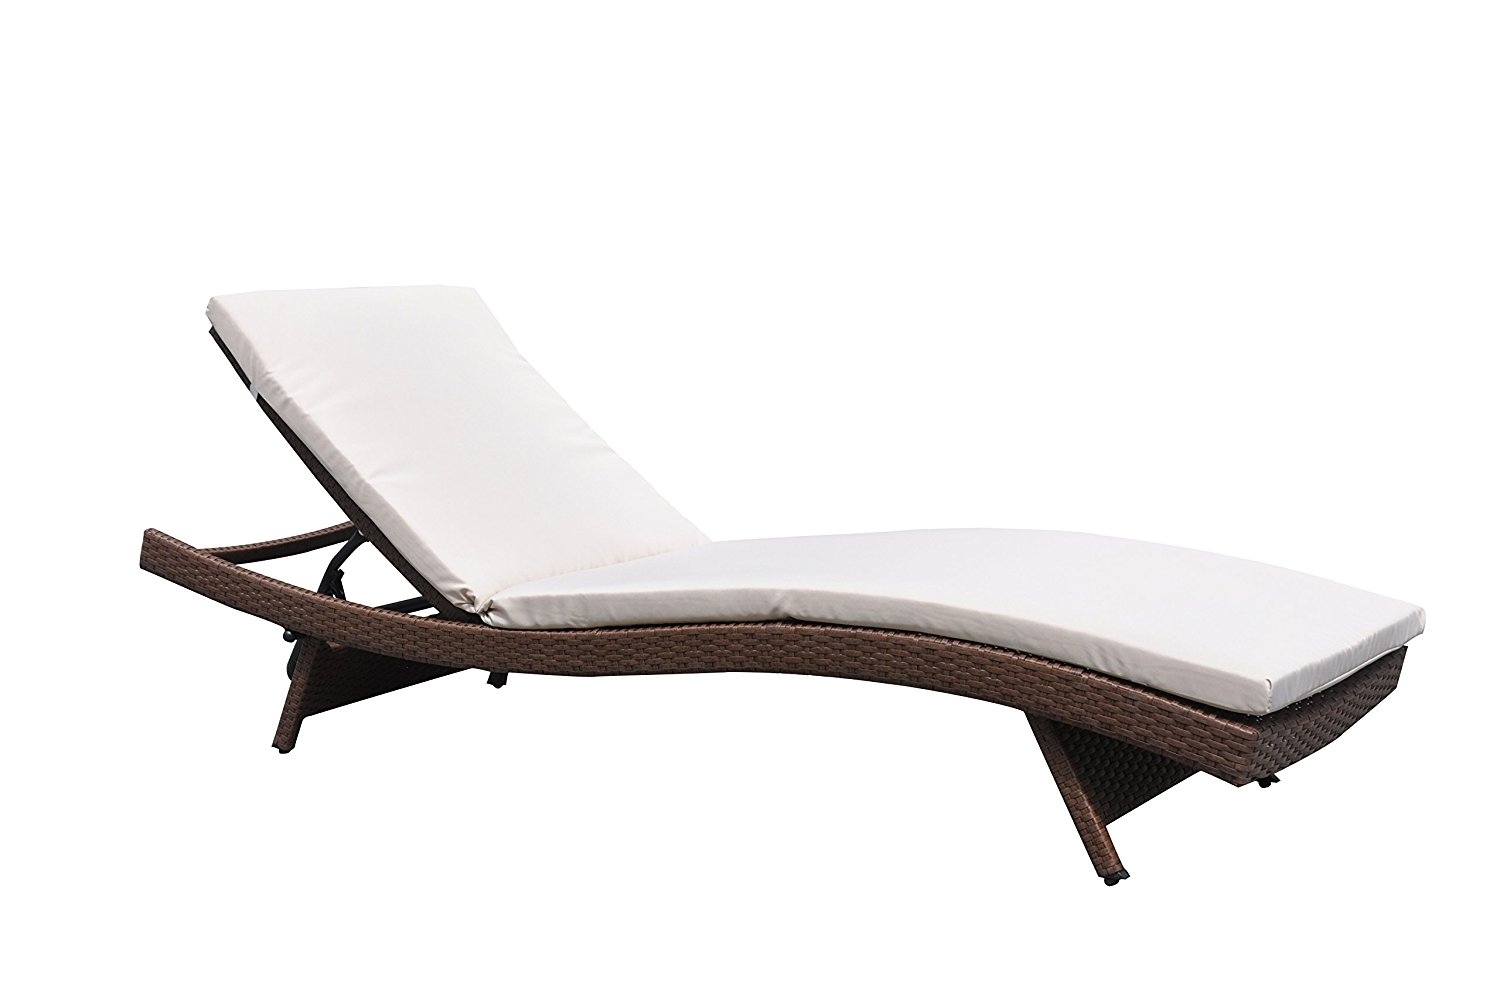 Outdoor Paito Recliner PE Wicker Adjustable Pool Chaise Lounge Chair Clearance